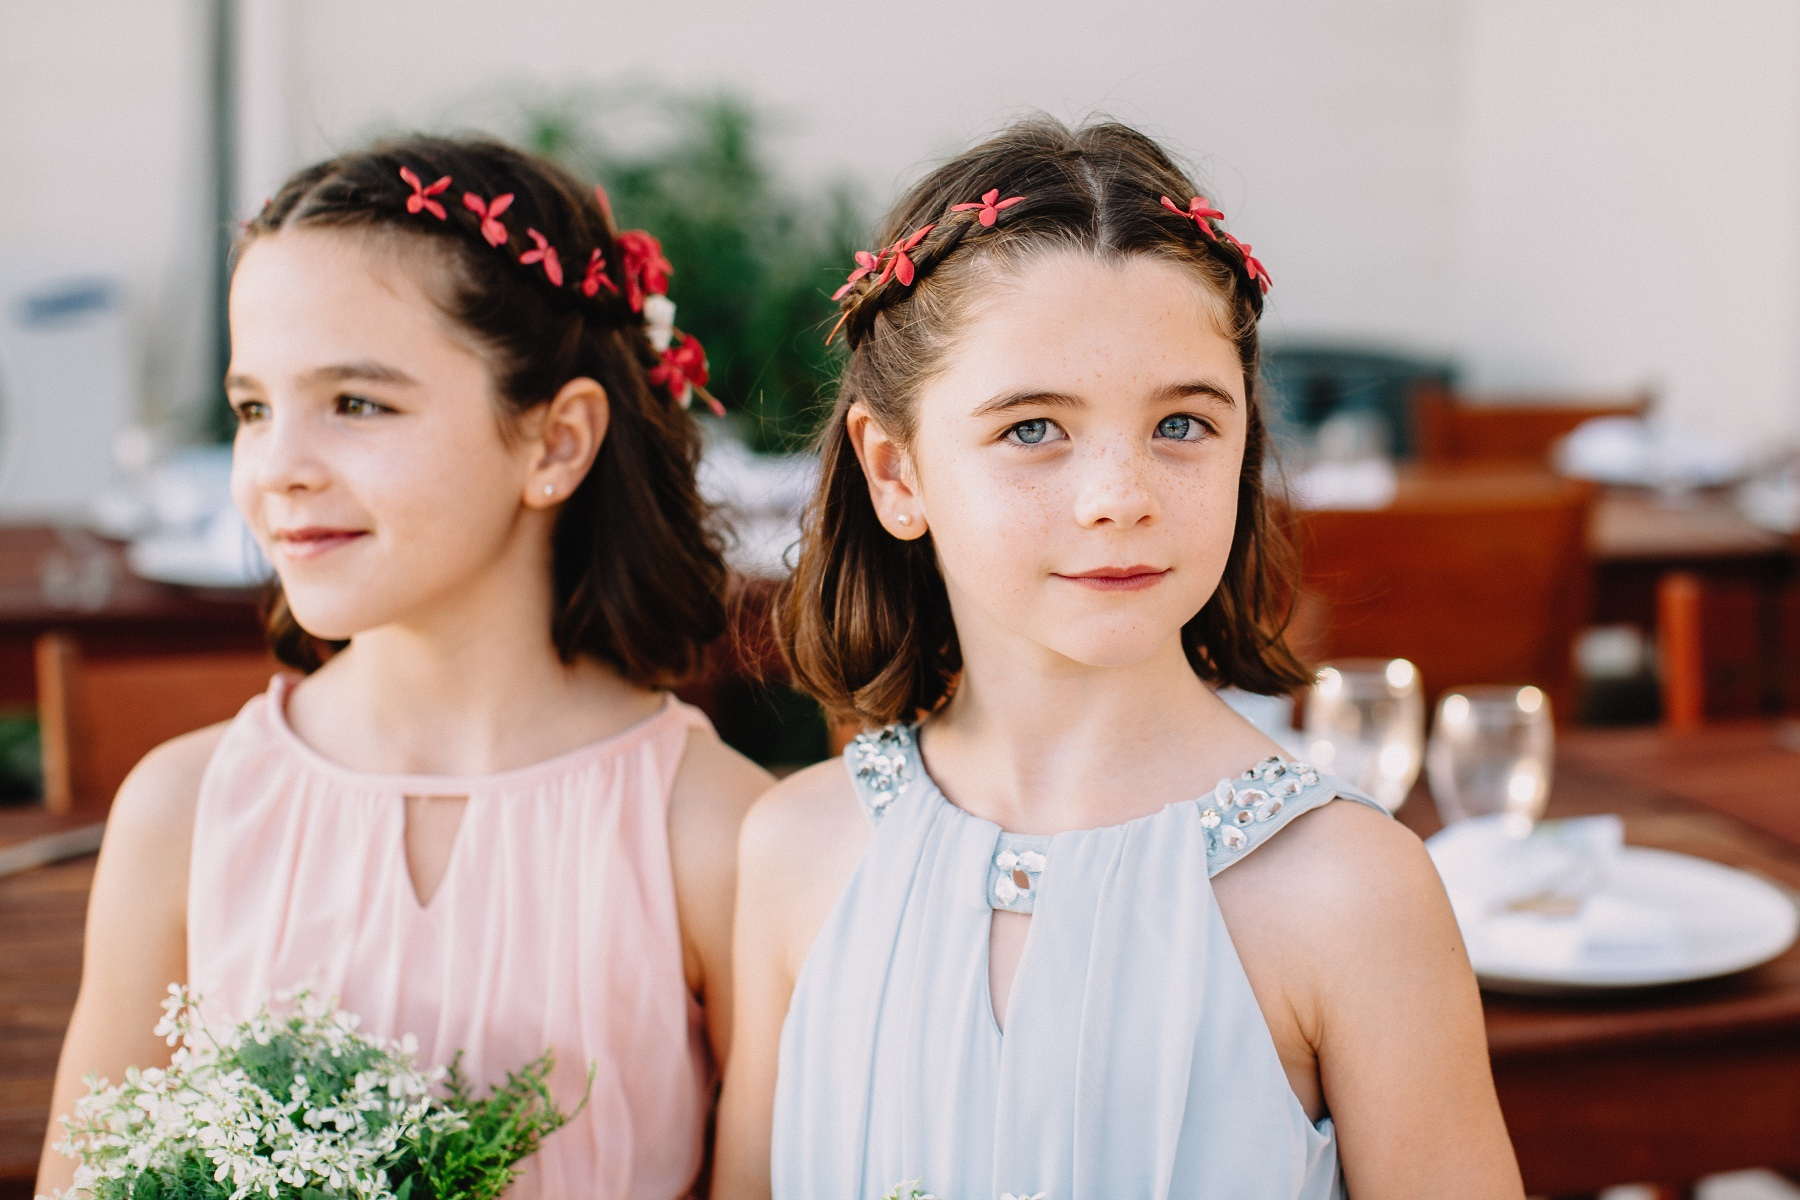 Twin girls wedding style dress ideas